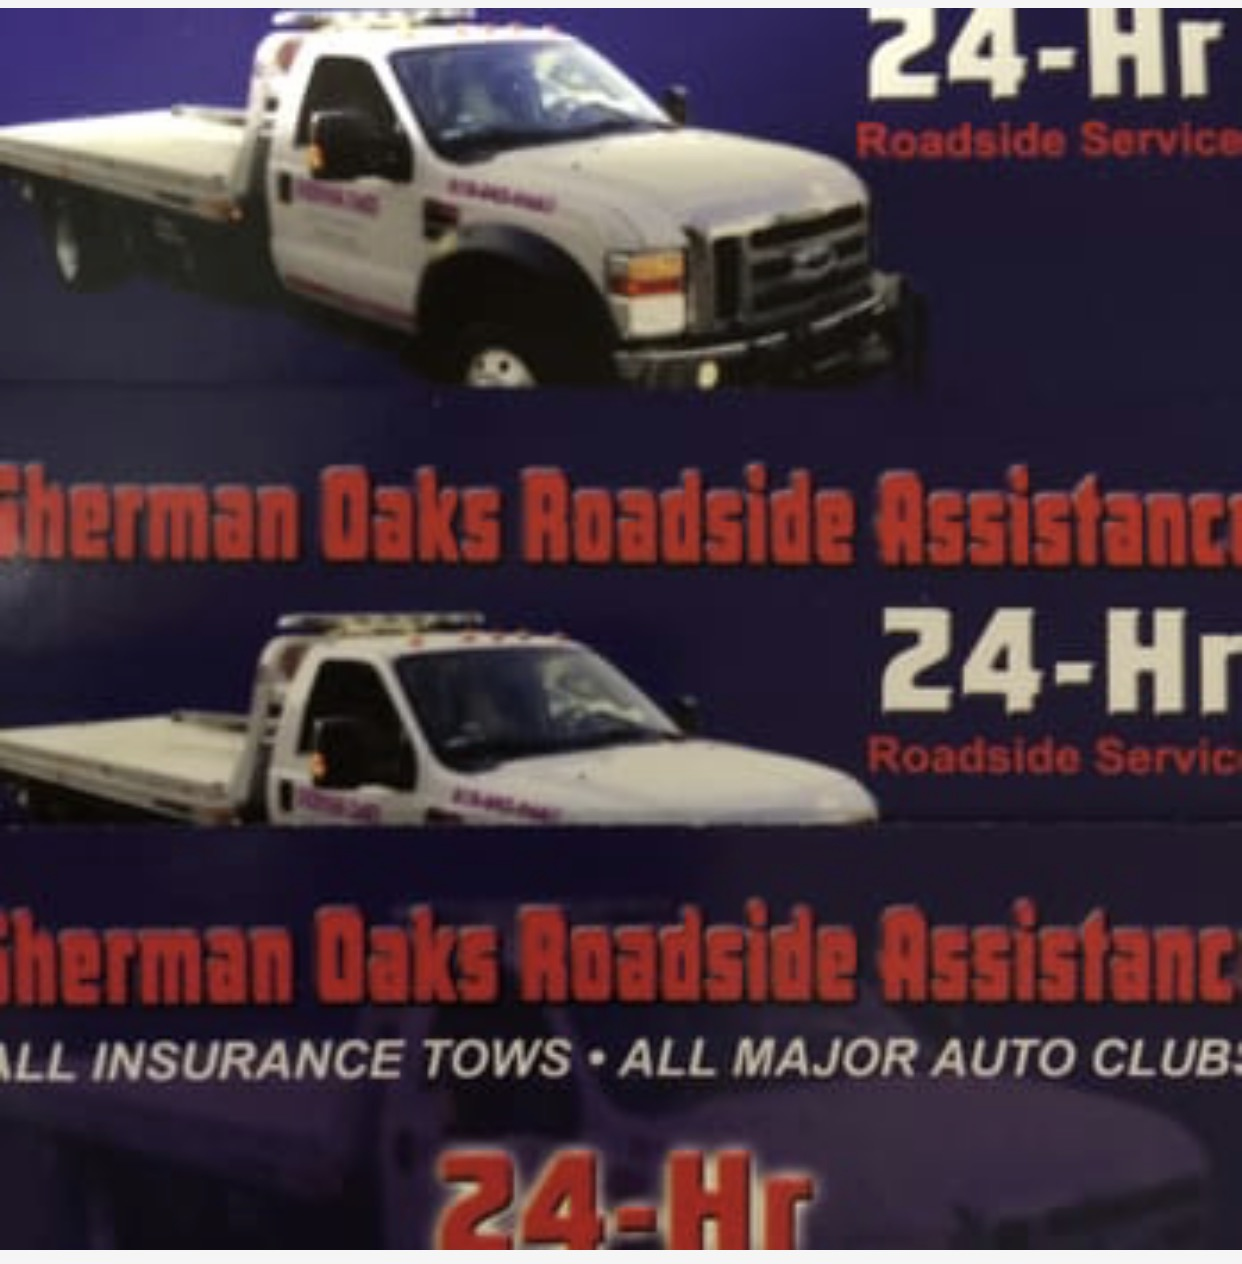 Auto Transport Quotes Sherman Oaks Roadside Assistance  Reviews And Ratings Of Auto